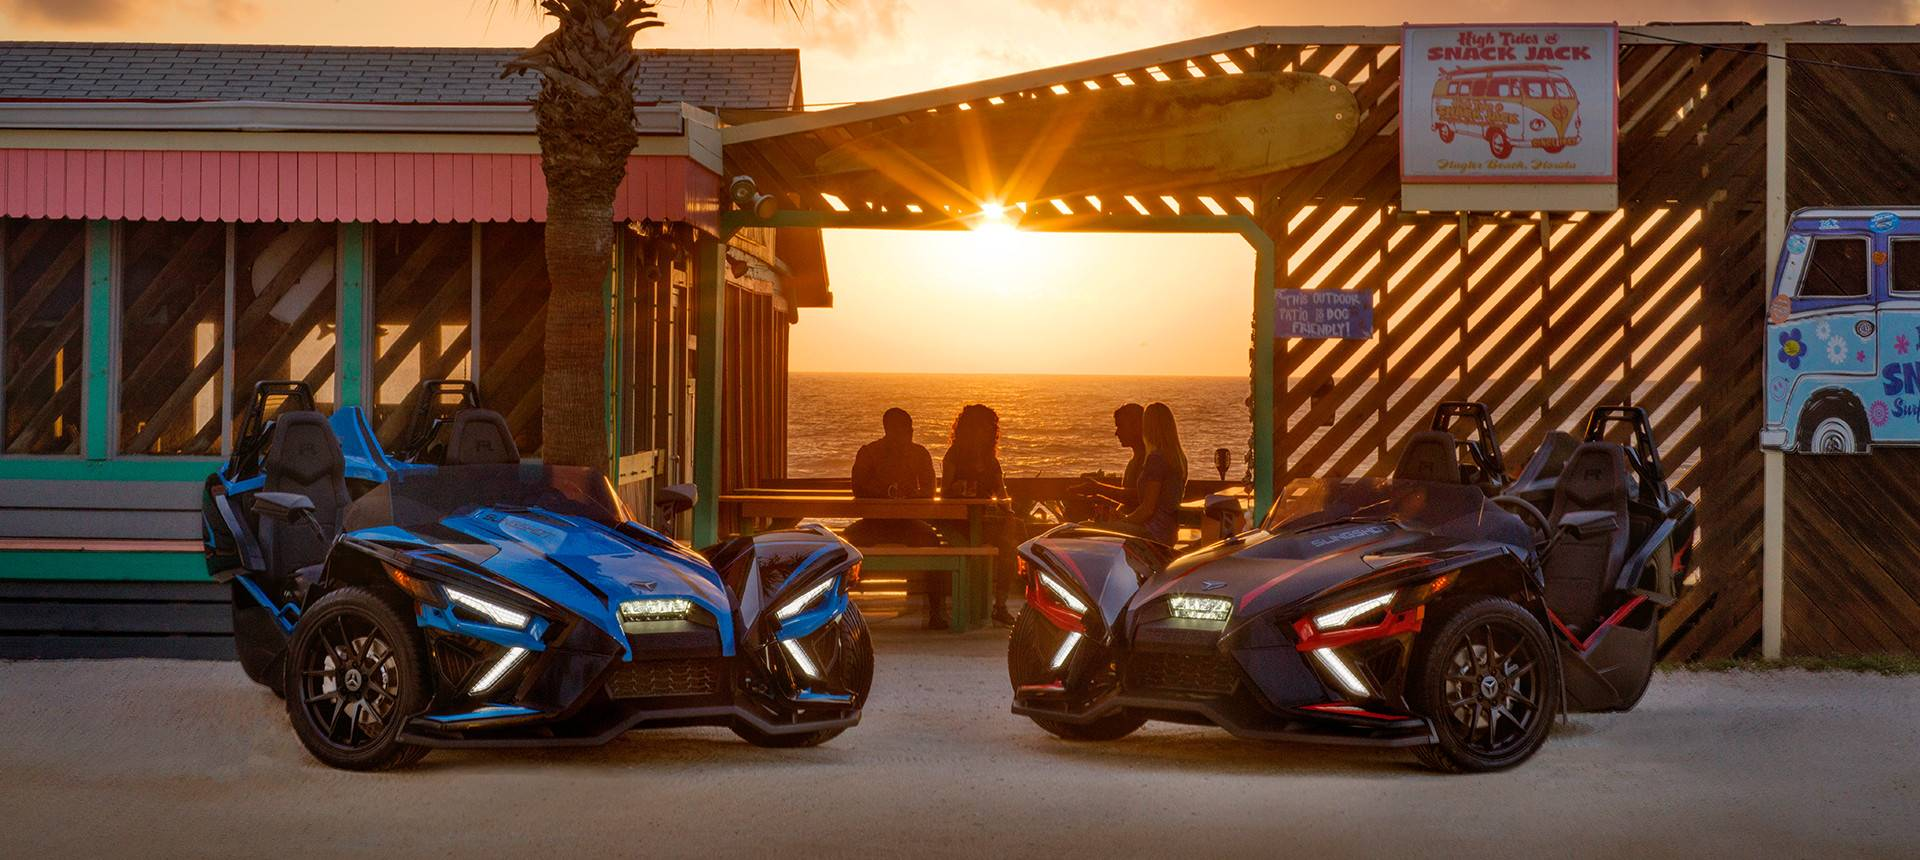 2020 Polaris SLINGSHOT R in Panama City Beach, Florida - Photo 17